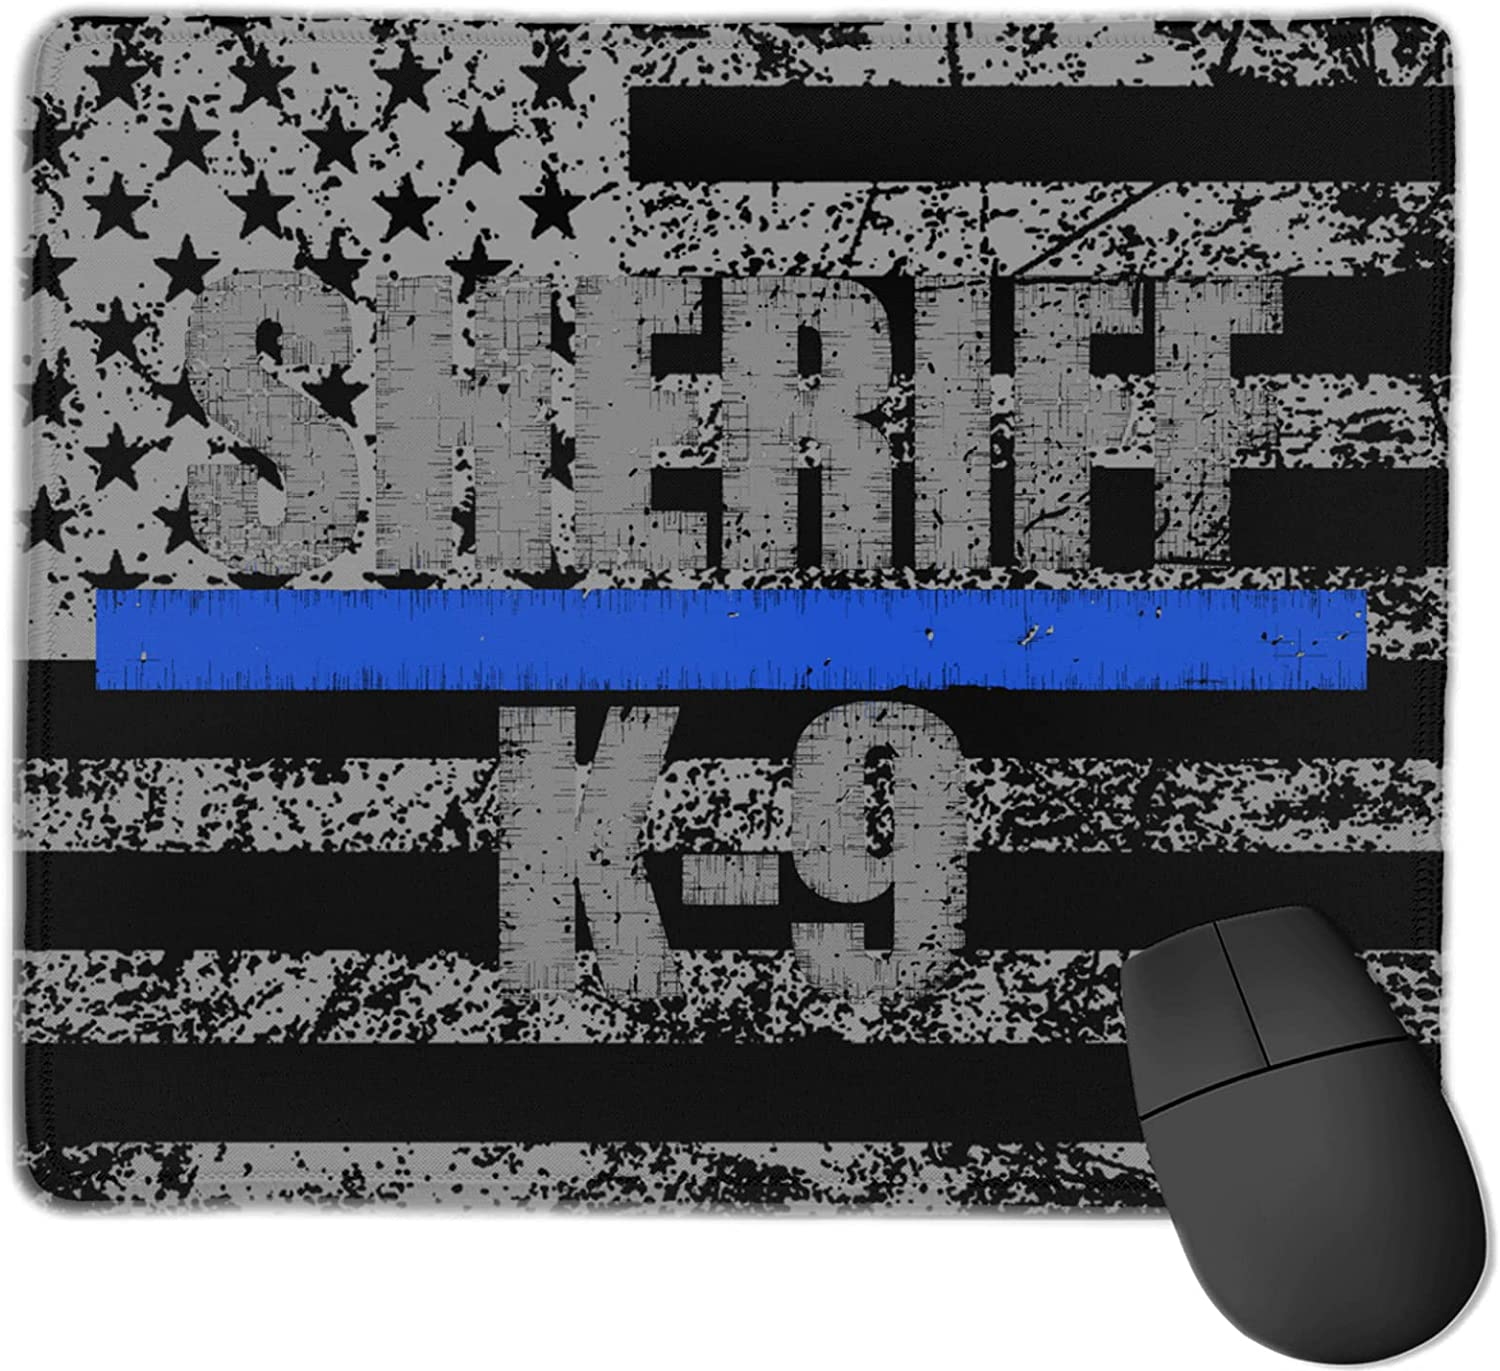 Sheriff Popular overseas K-9 Thin Blue New mail order Line Pad Computer Gaming O Mouse